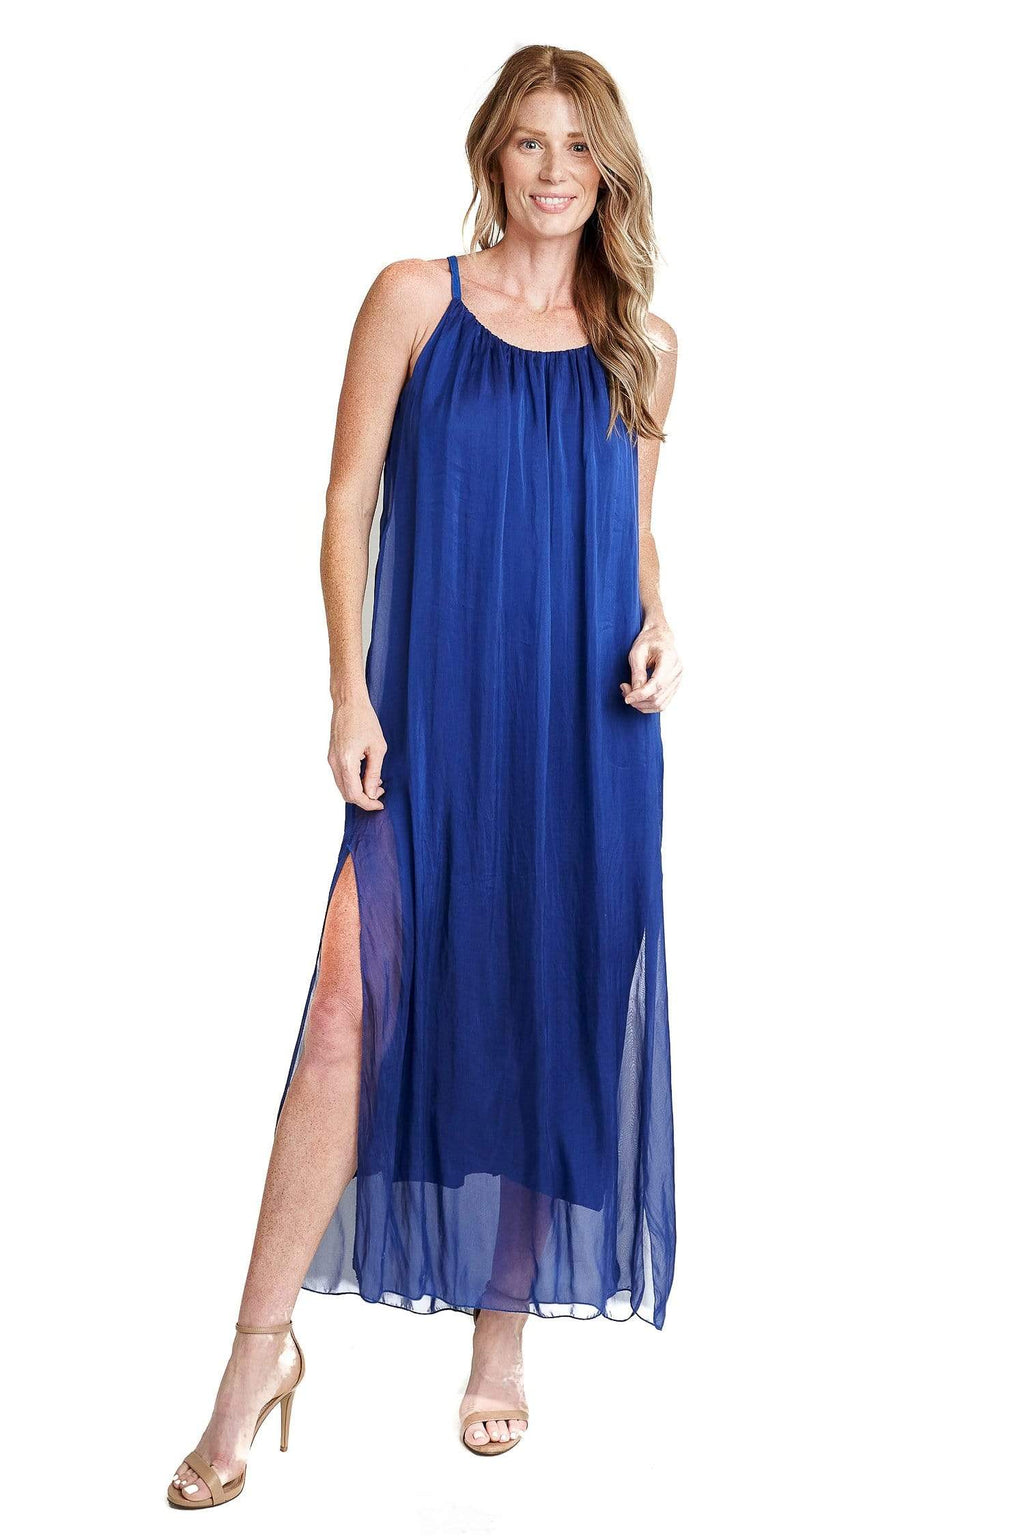 shop-sofia Katie  Open Side Slits Maxi Sofia Collections Italian Silk Linen Satin